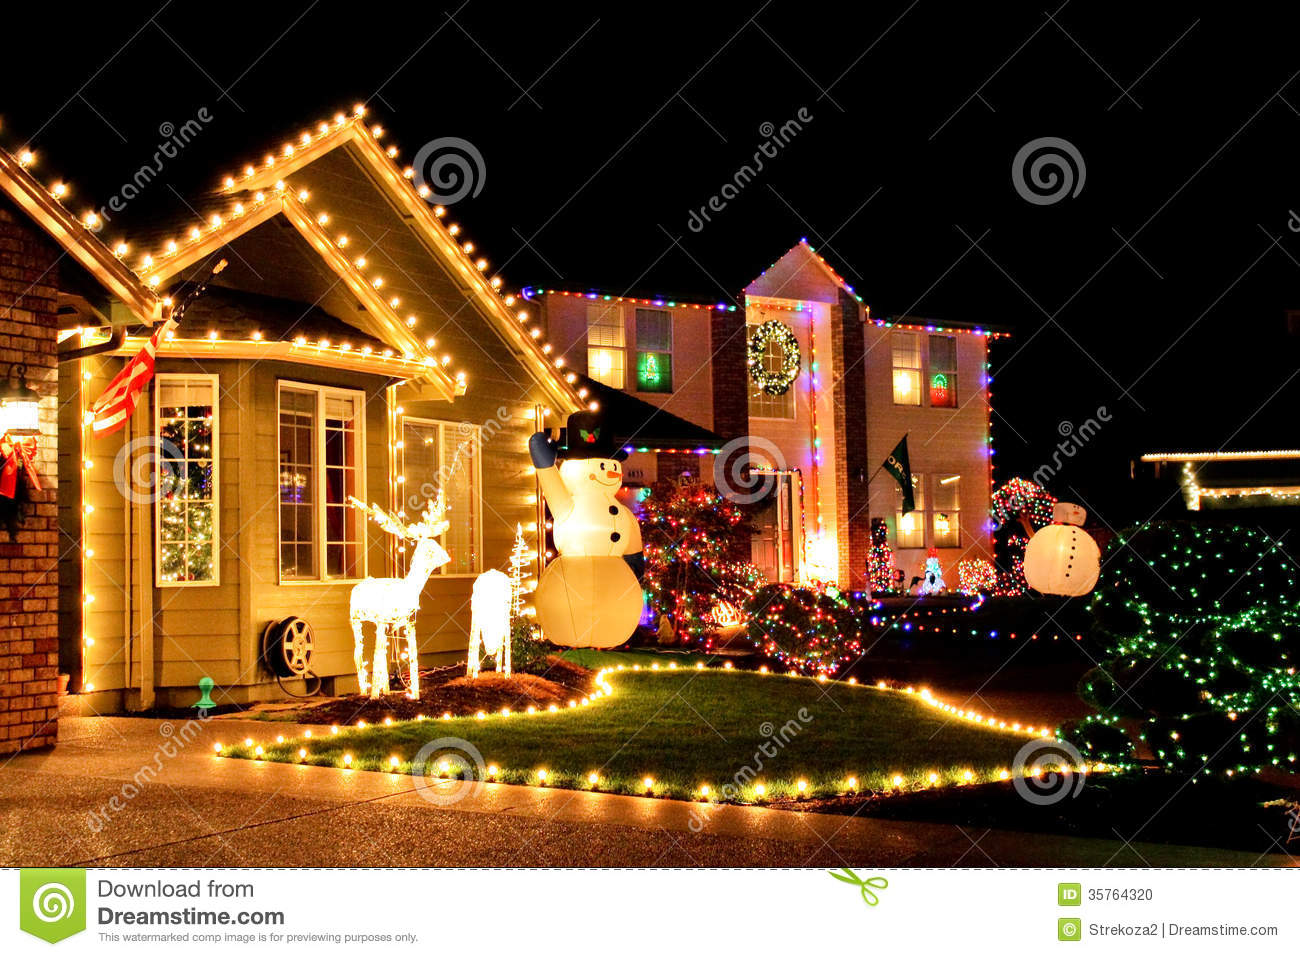 Christmas Village Lights Editorial Image   Image  35764320 IoohWyTu